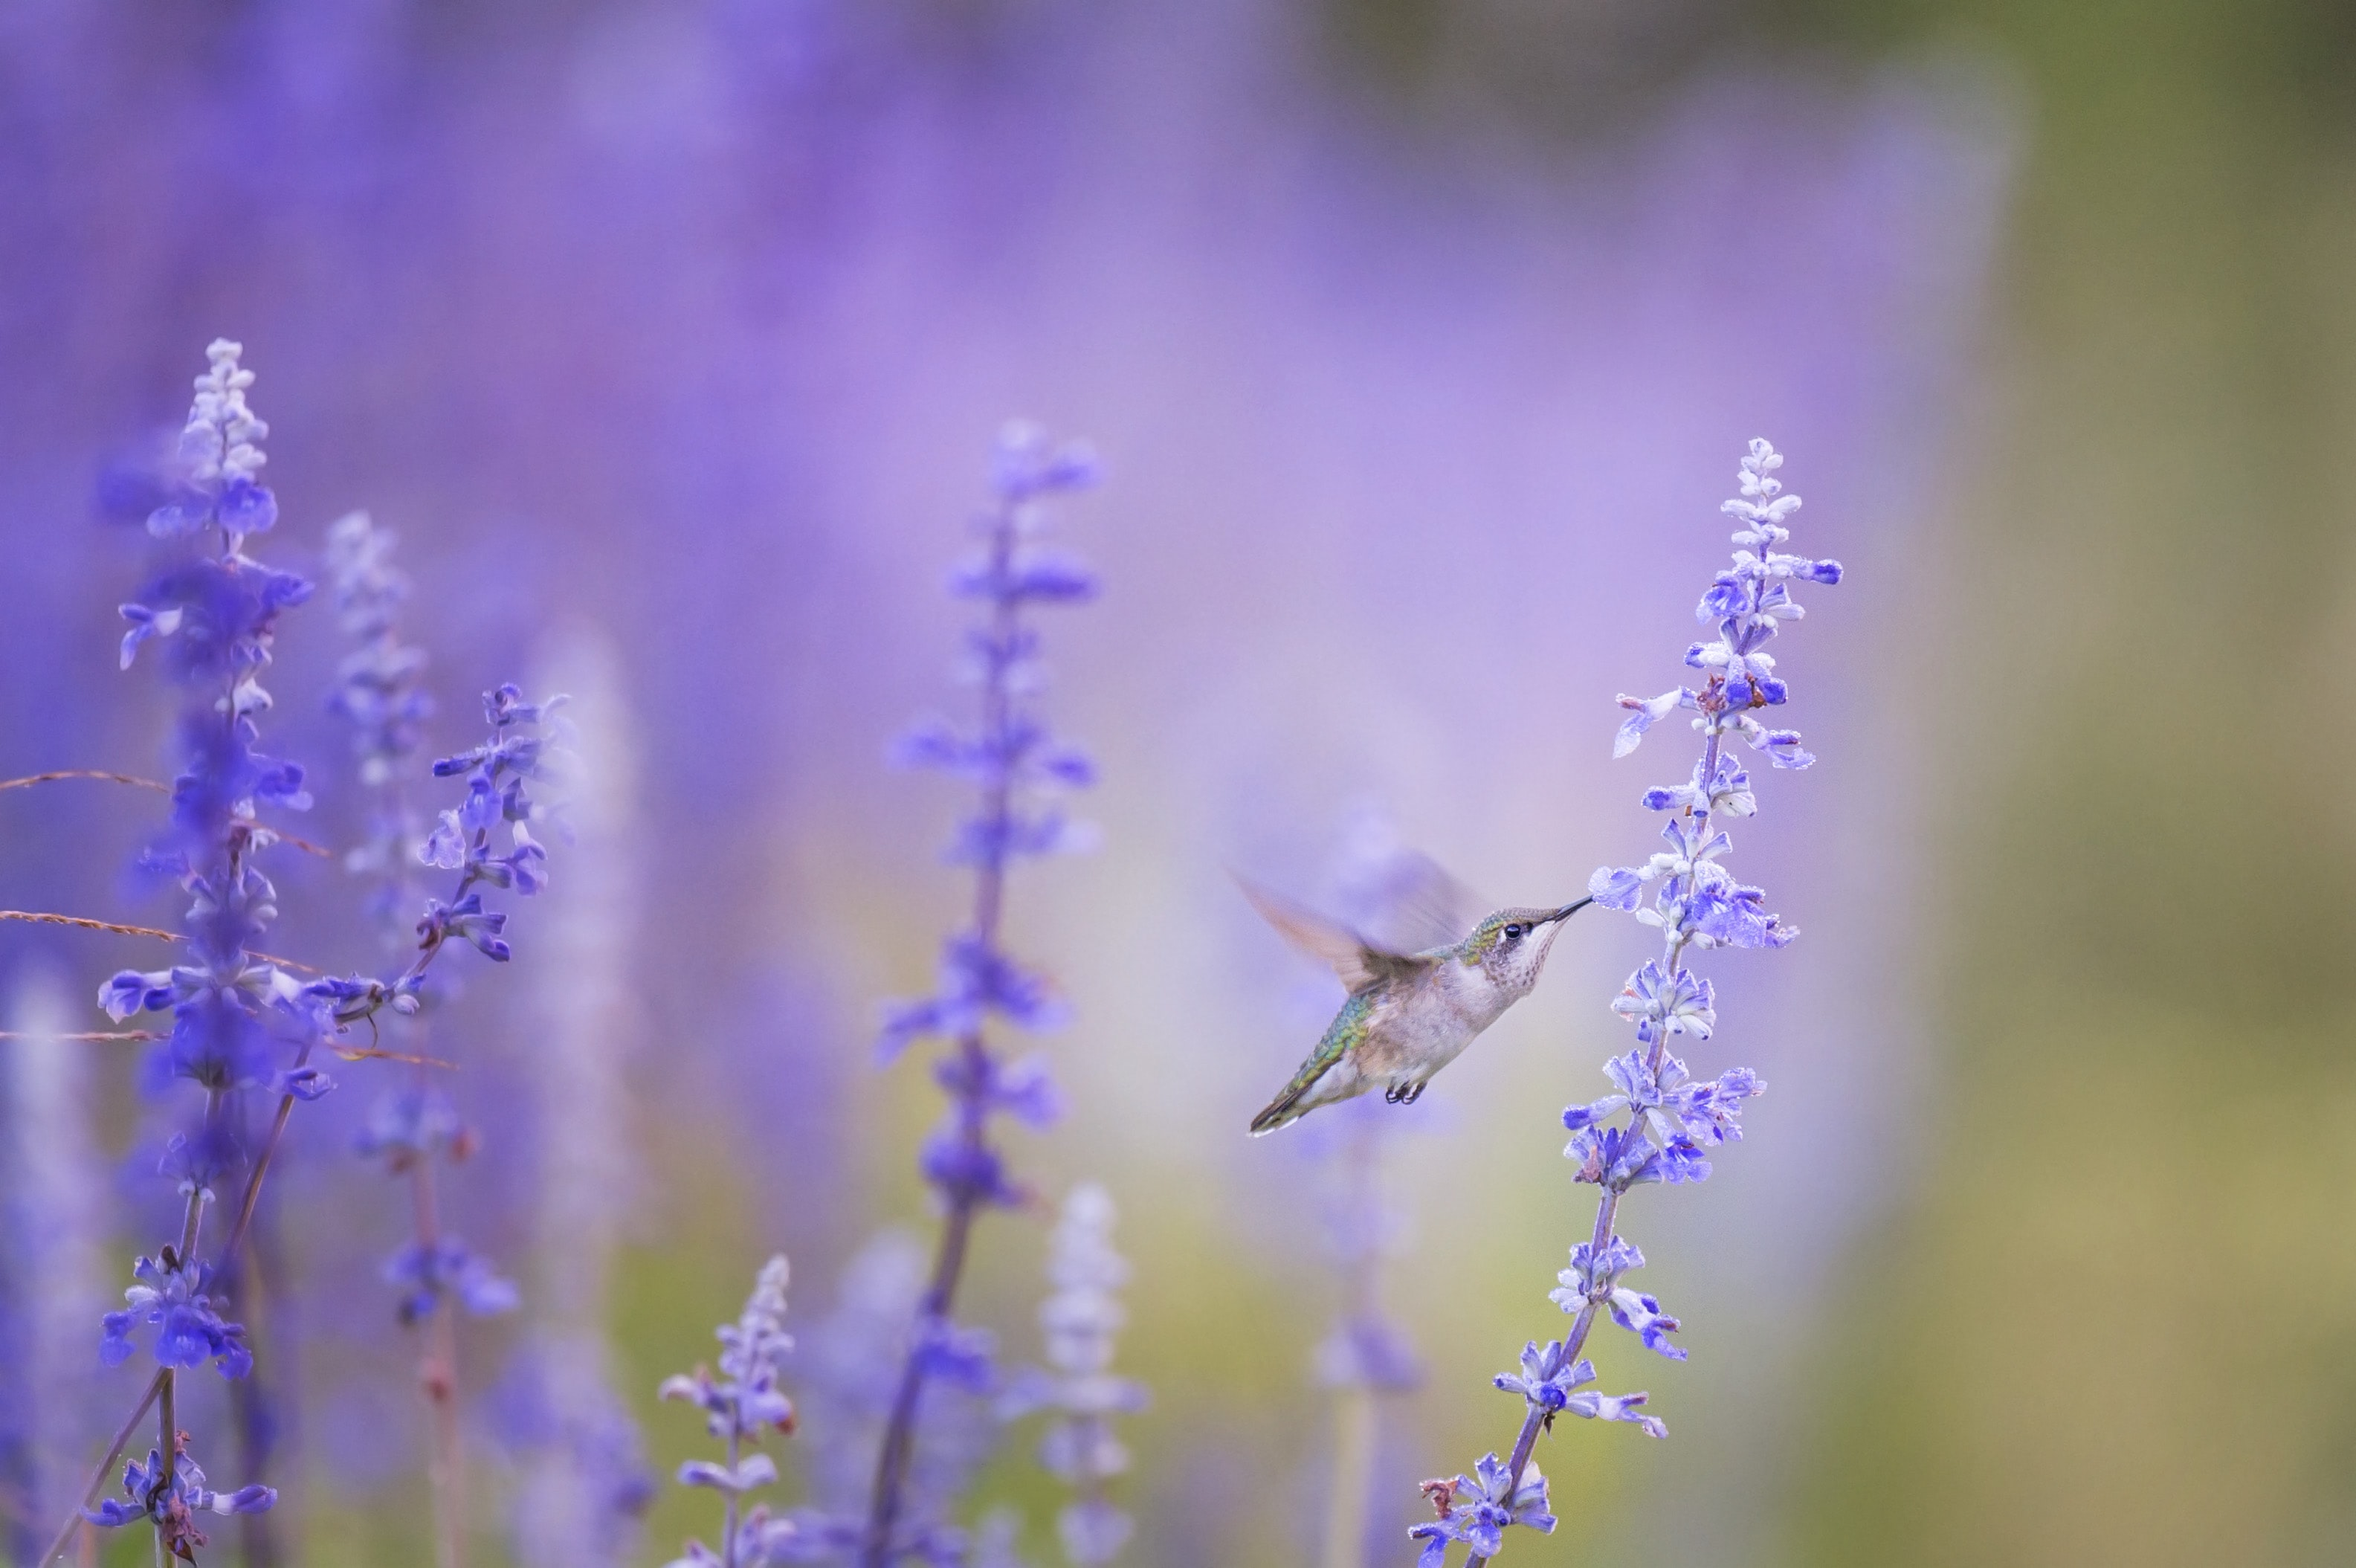 closeup photo of bird beside purple petal flowers